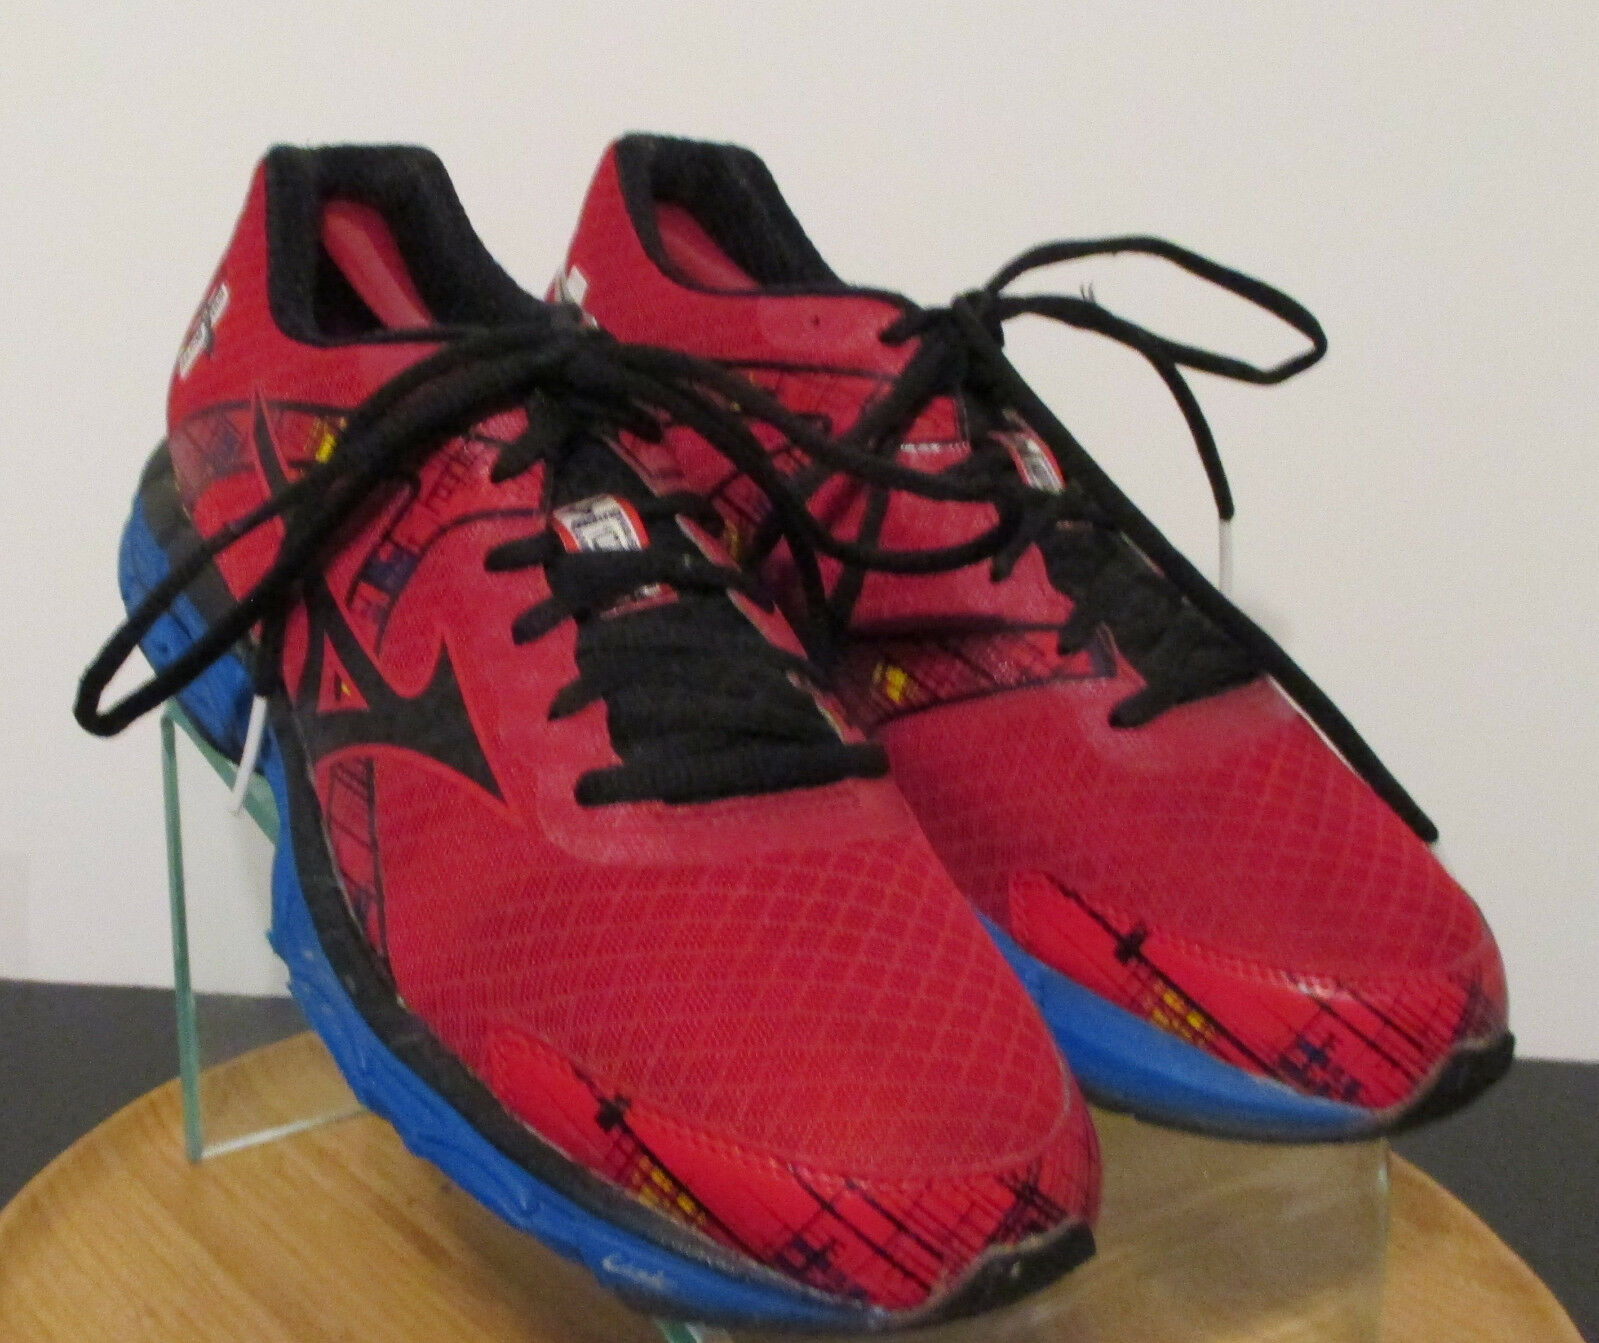 Men's sz 10 M red bluee  Wave inspira 10 running training athletic shoes